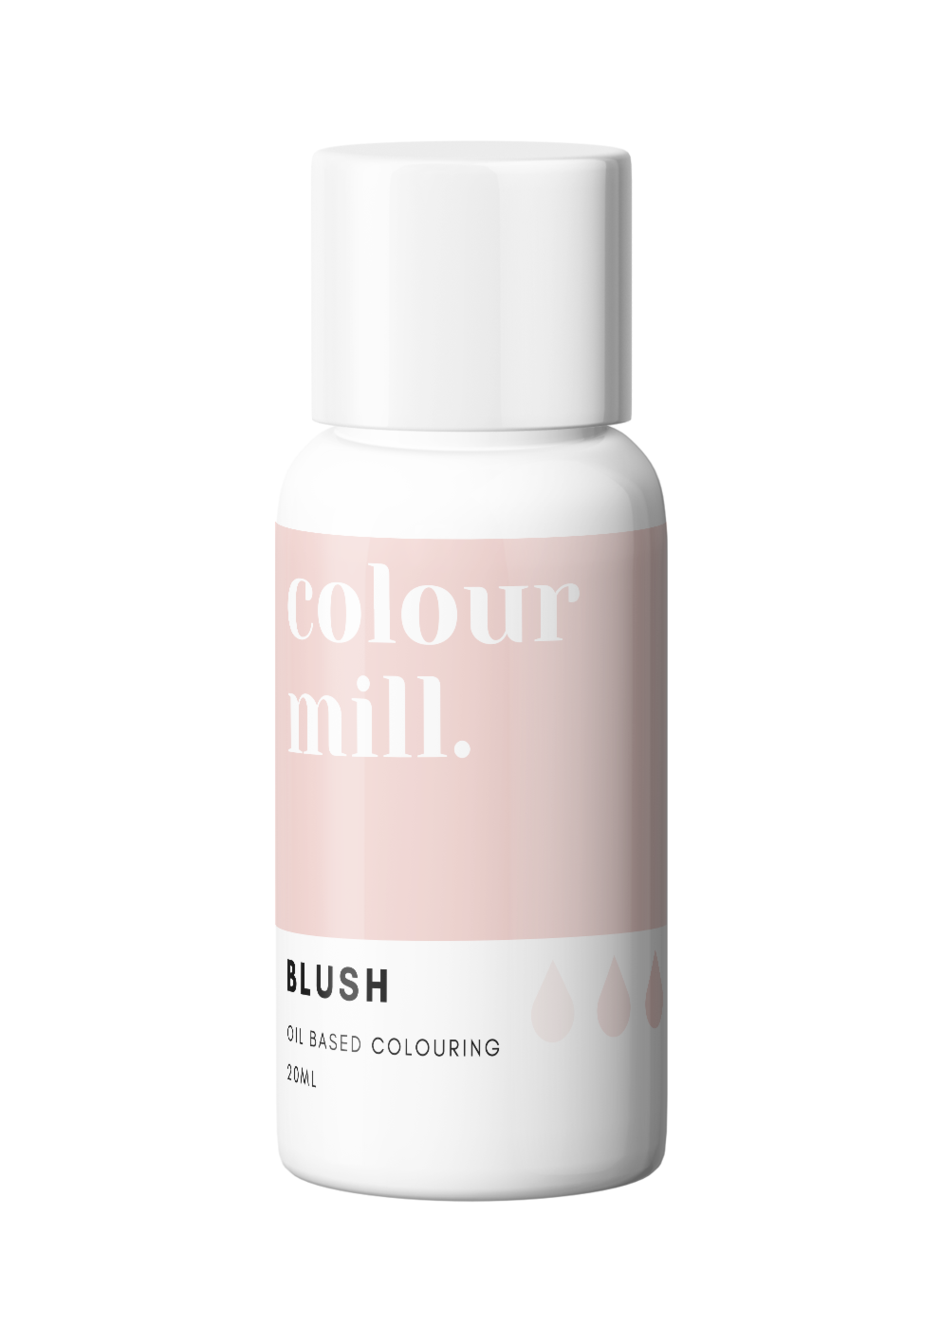 Colour Mill Oil Based Colouring 20ml Blush